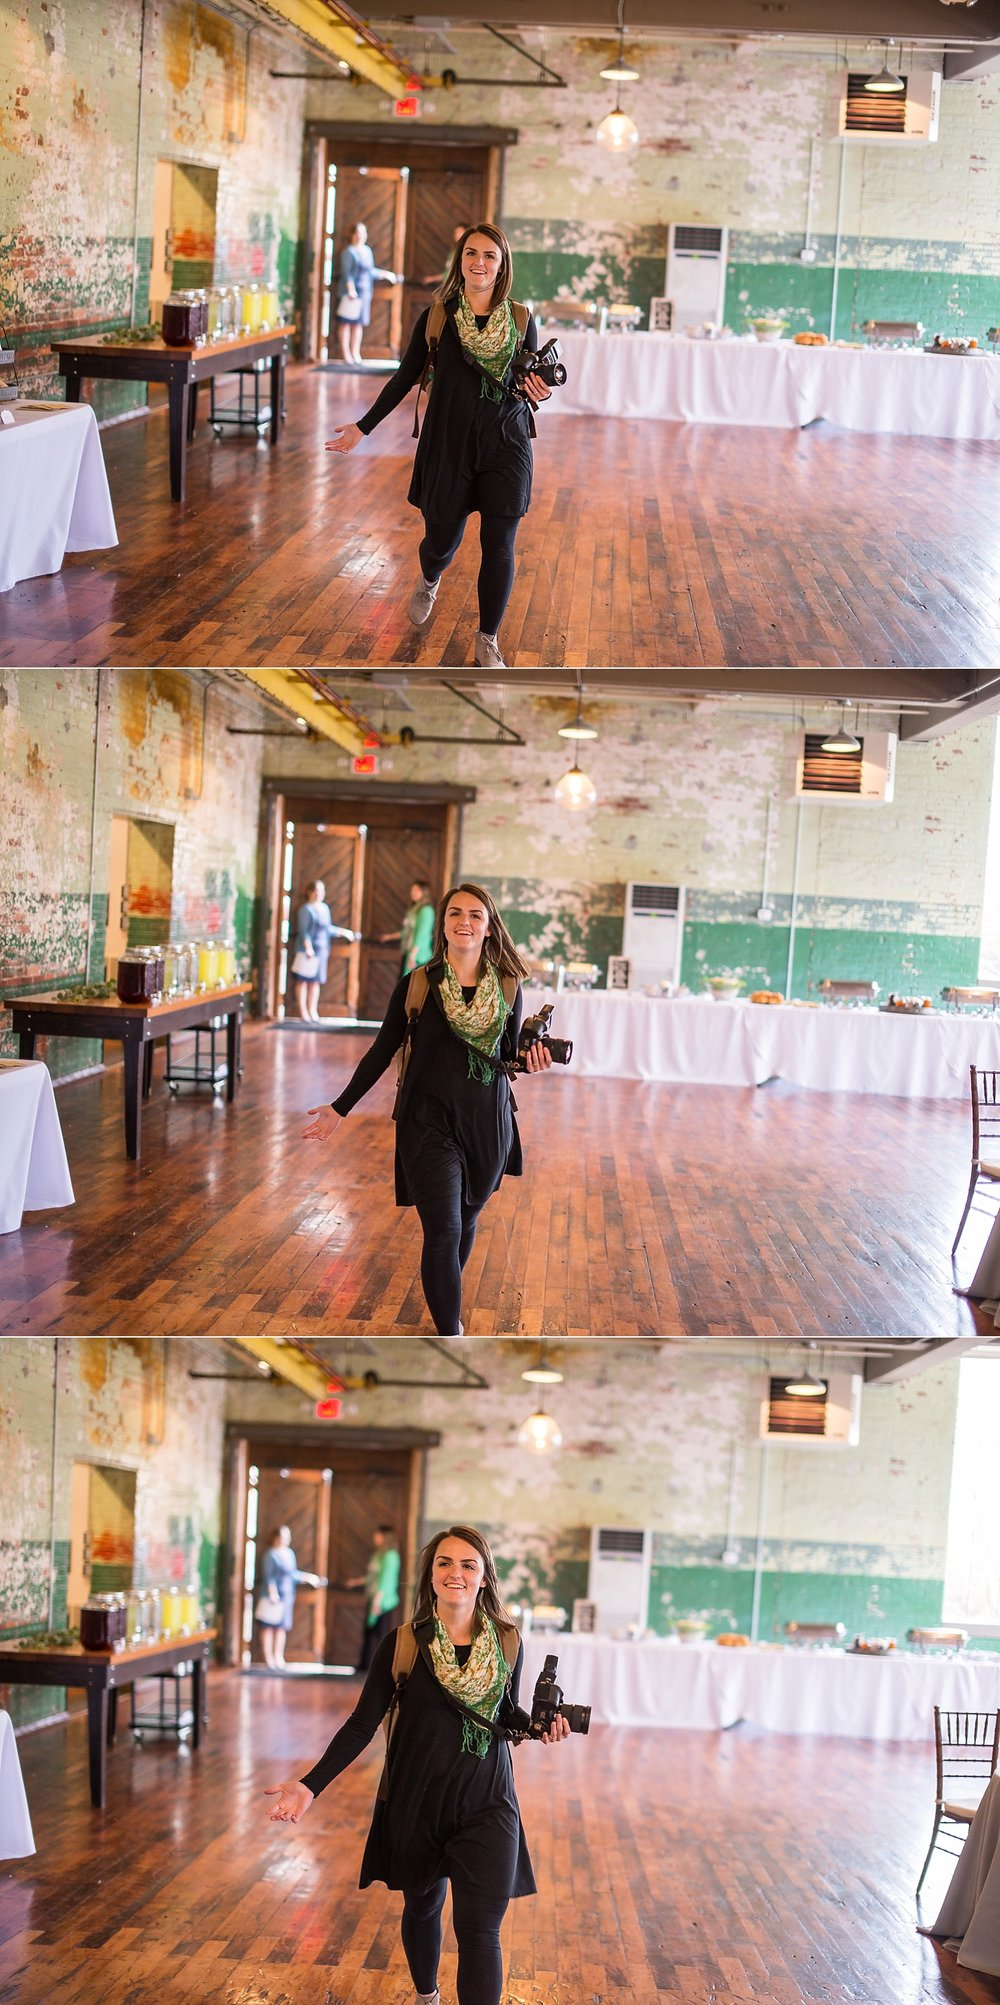 Waltzing into the reception like